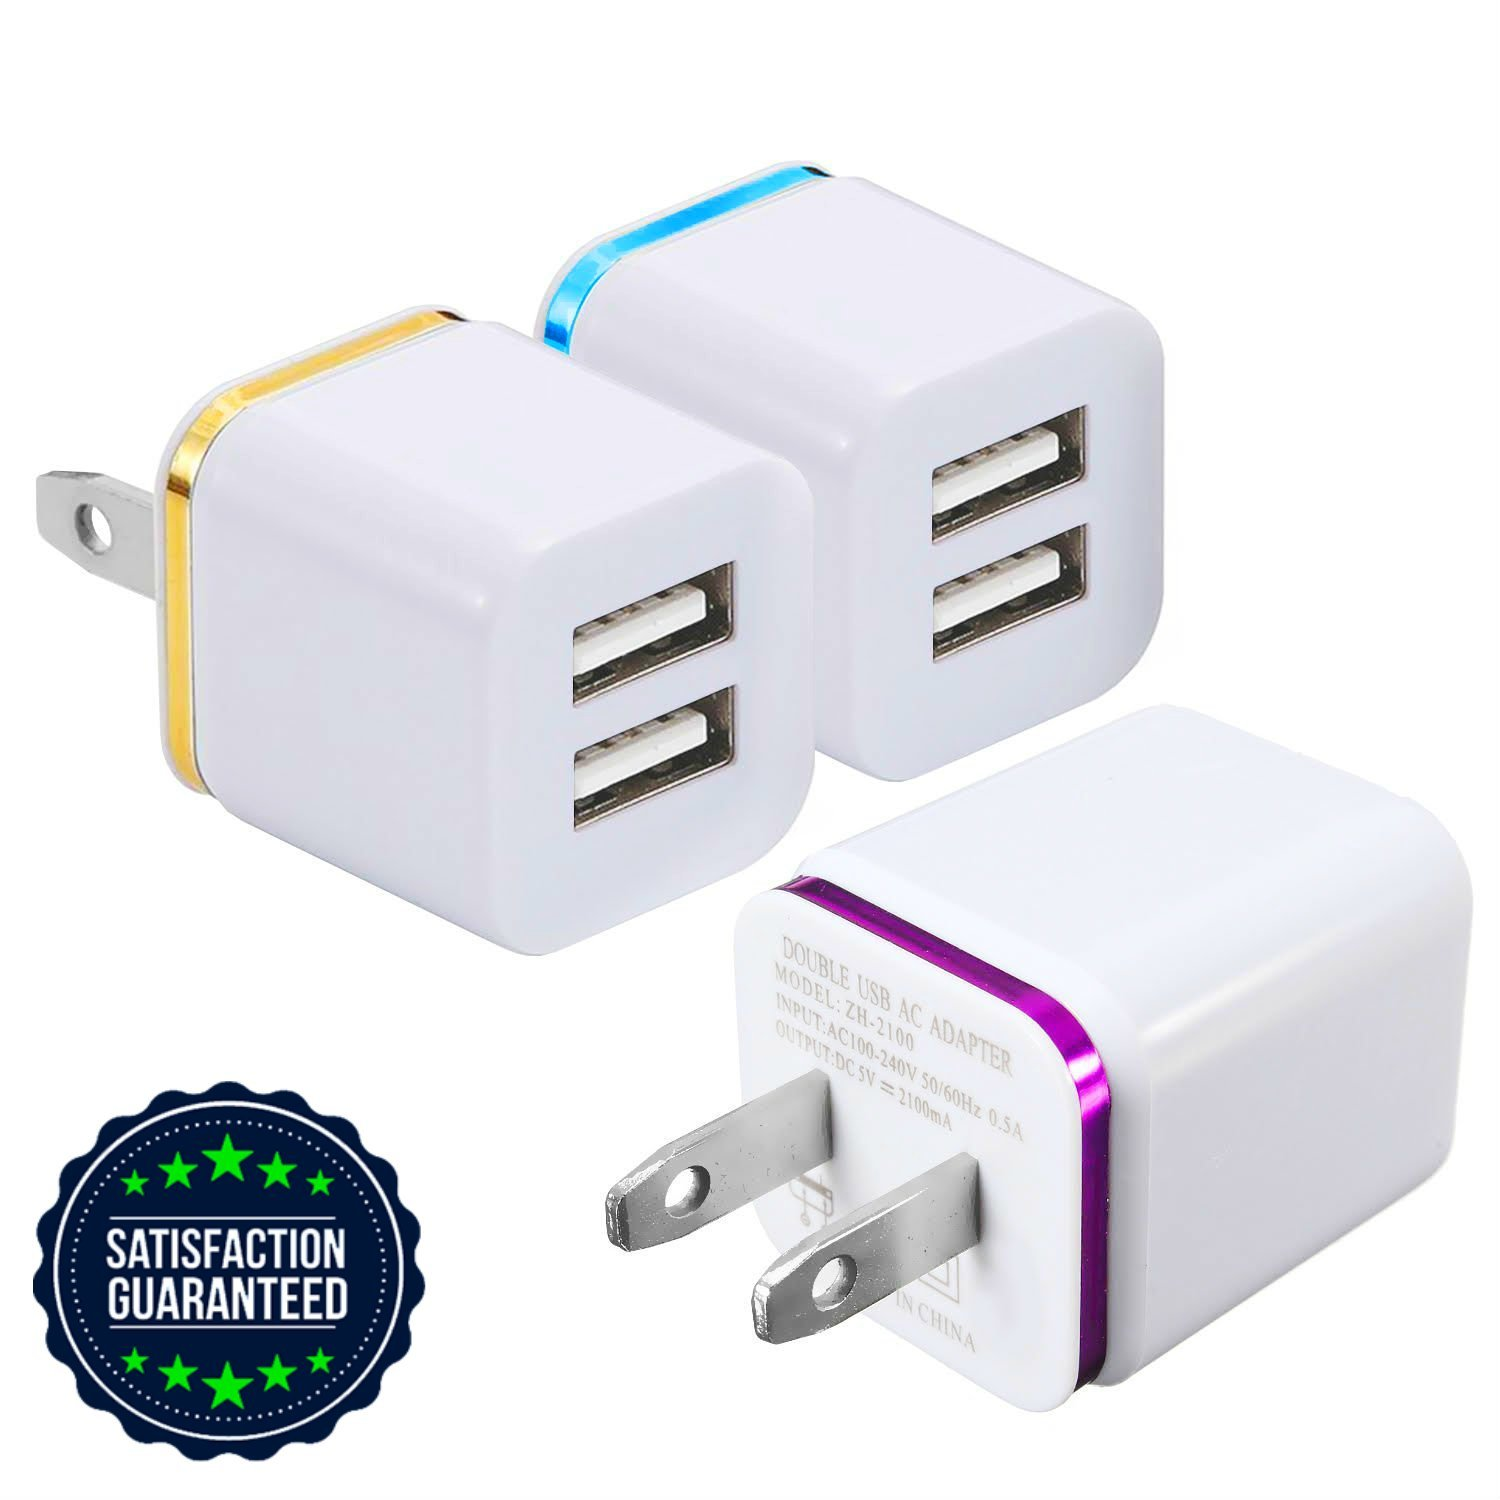 USB Charger, Certified Tricon 2-PORT Wall Charger Power Adapter, 3-Pack 2.4Amp Dual Port Fast Charging Cube for iPhone X 8/7/6 Plus SE/5S/4, iPad, iPod, Samsung, LG, HTC, Huawei, Moto, Tablets & More